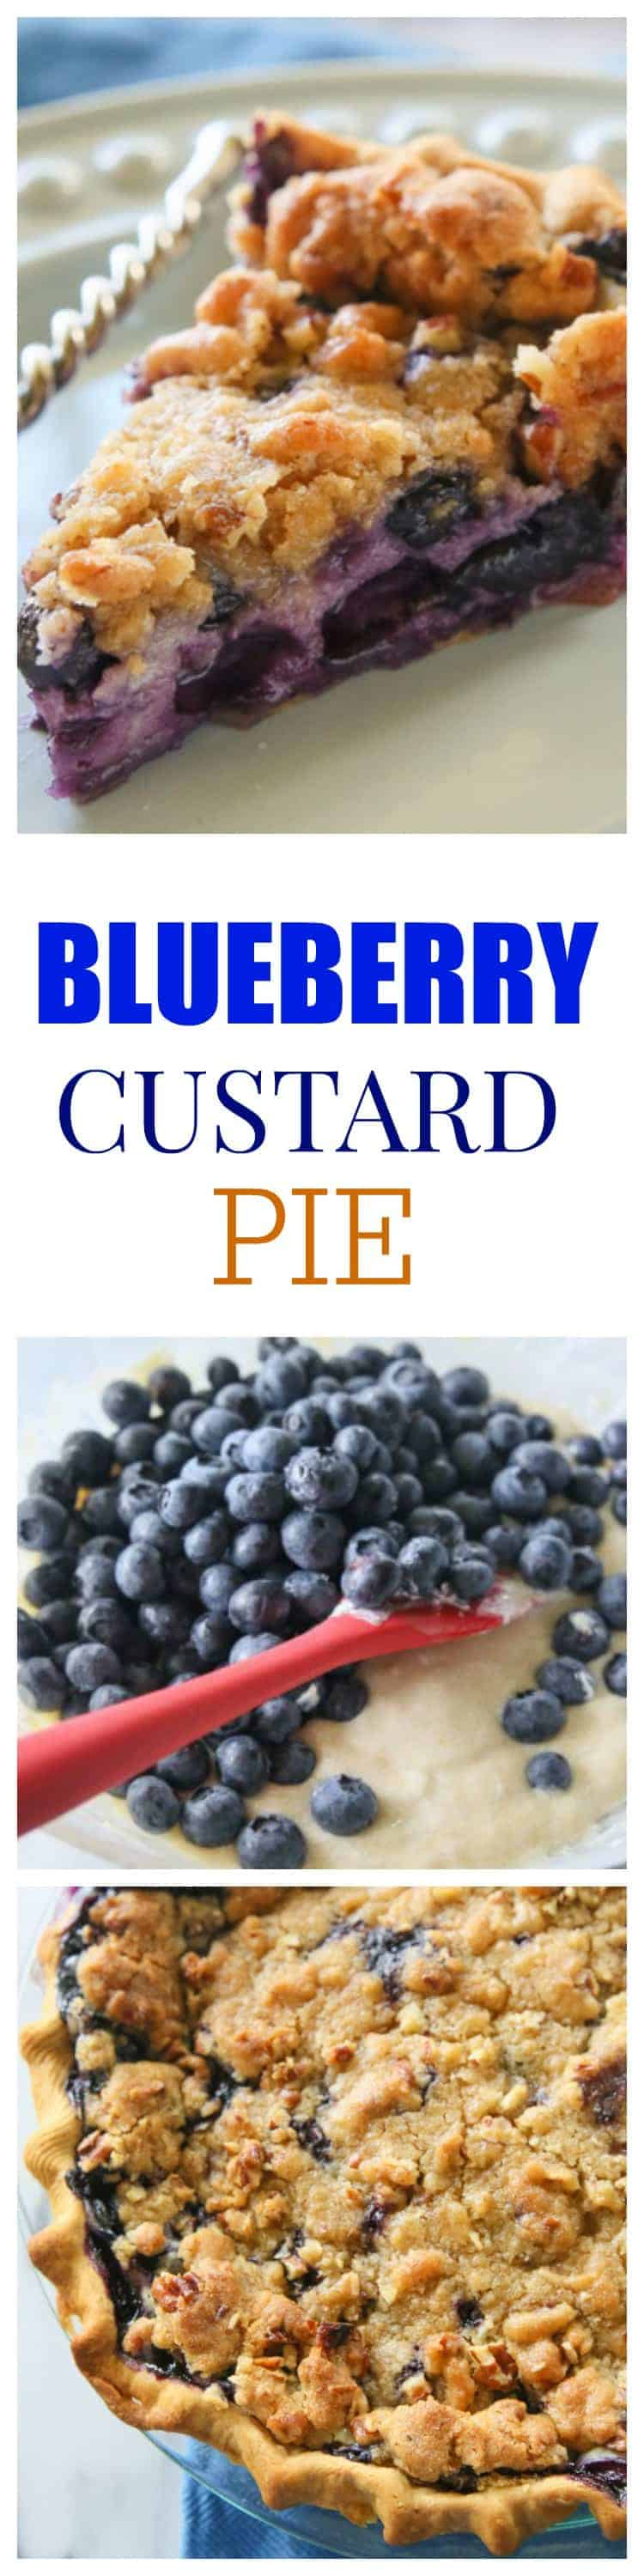 Blueberry Custard Pie - A creamy blueberry custard topped with a sweet streusel. the-girl-who-ate-everything.com